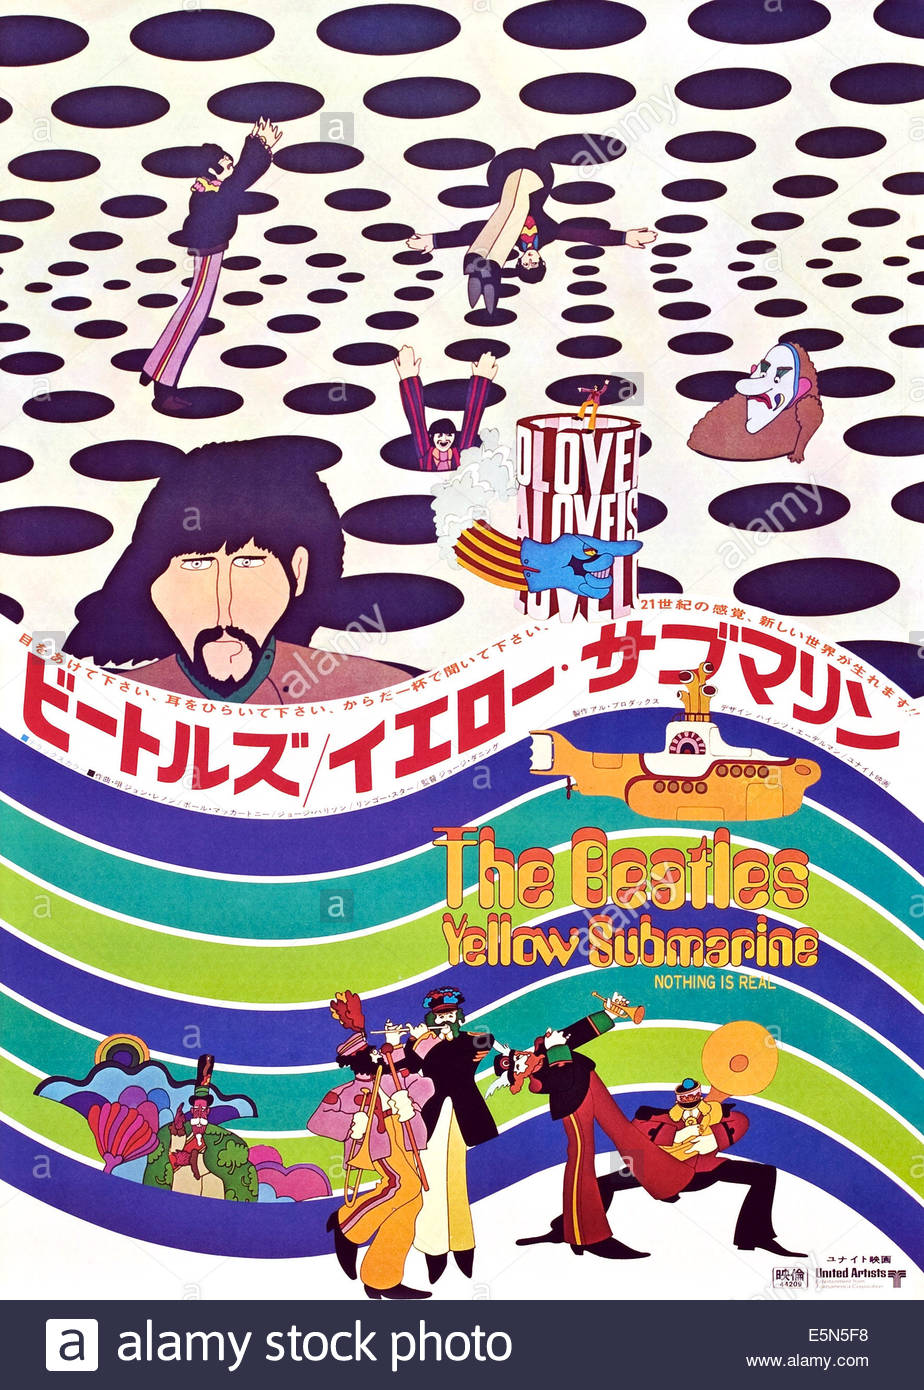 YELLOW SUBMARINE: The Beatles, Japanese poster, top from left: John Lennon, George Harrison, Ringo Starr, Paul McCartney, Stock Photo